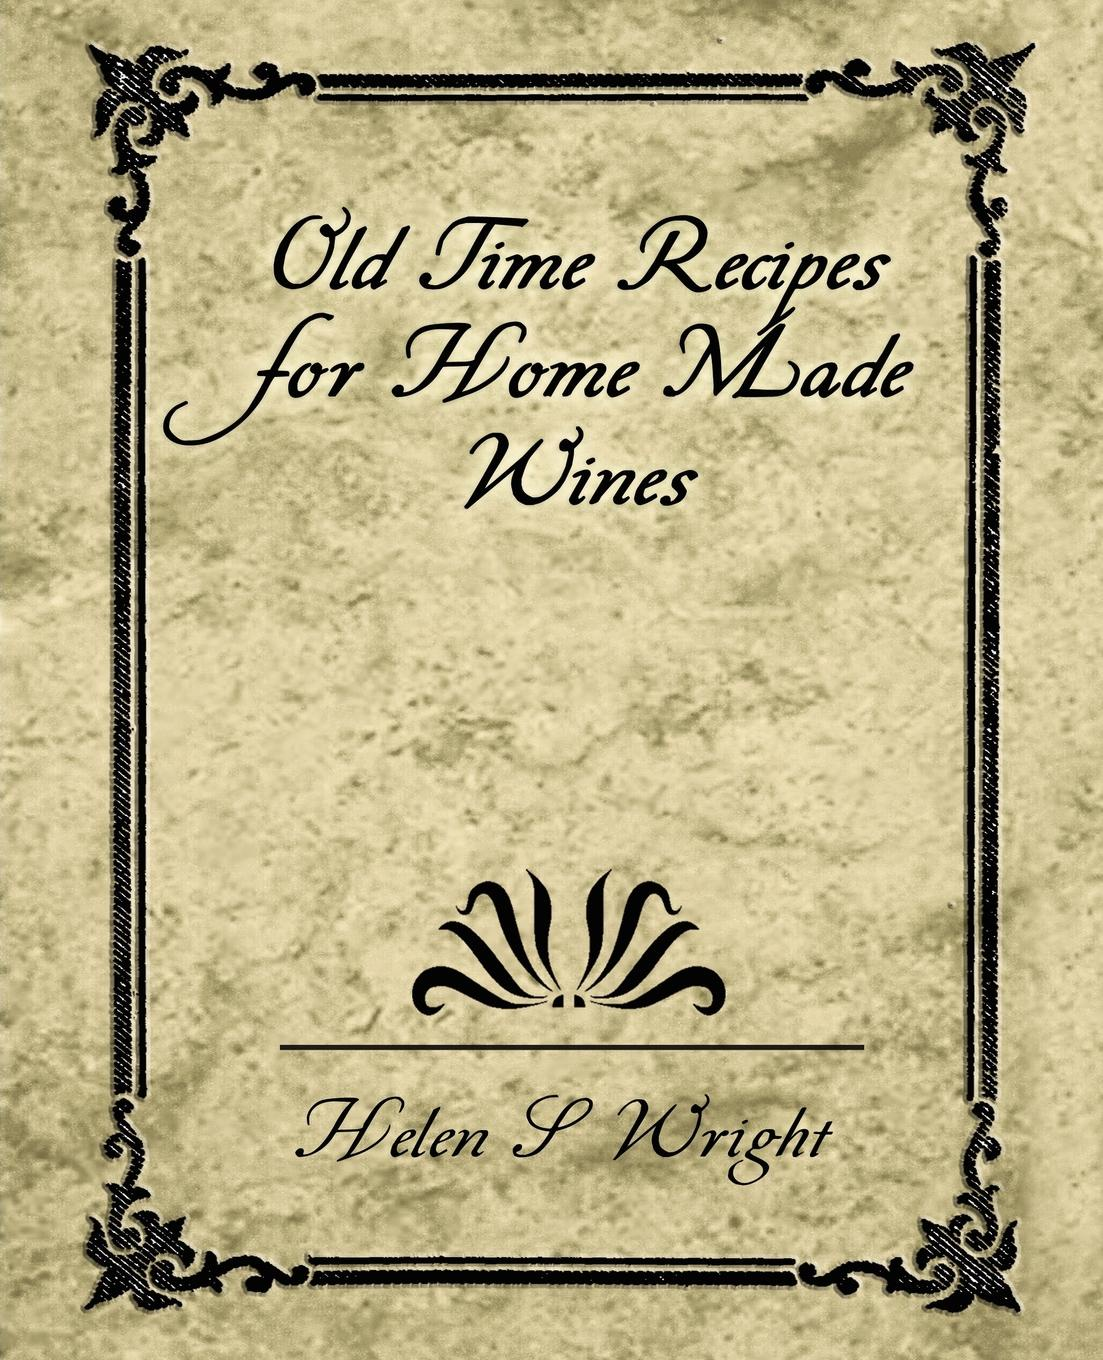 купить S. Wright Helen S. Wright, Helen S. Wright Old Time Recipes for Home Made Wines онлайн